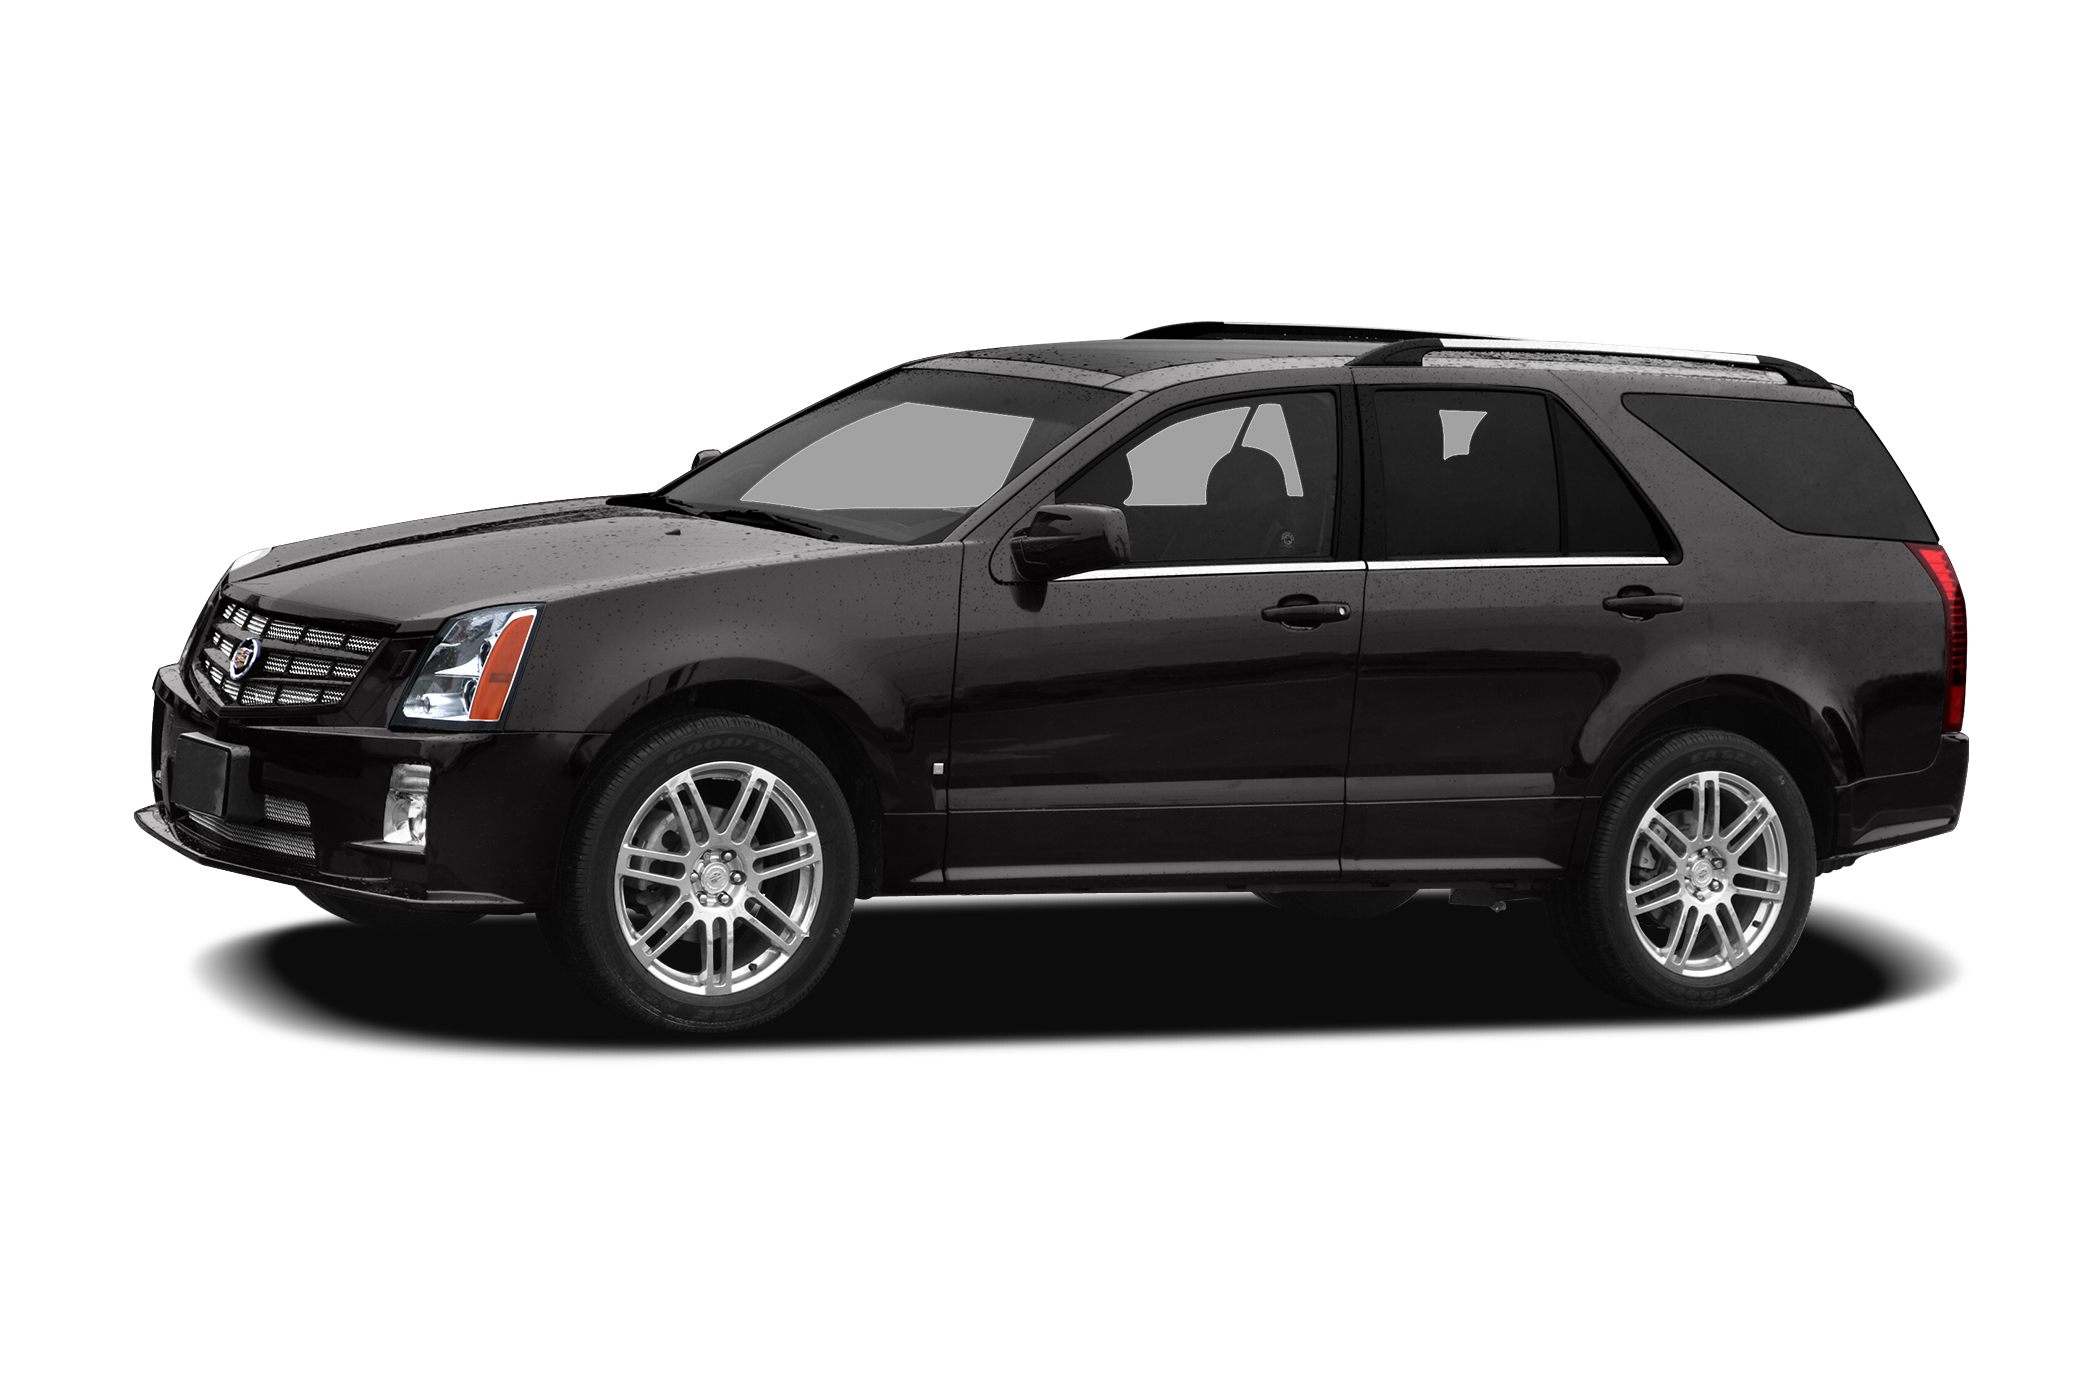 2008 Cadillac SRX V6 SUV for sale in Bartlesville for $15,995 with 51,270 miles.